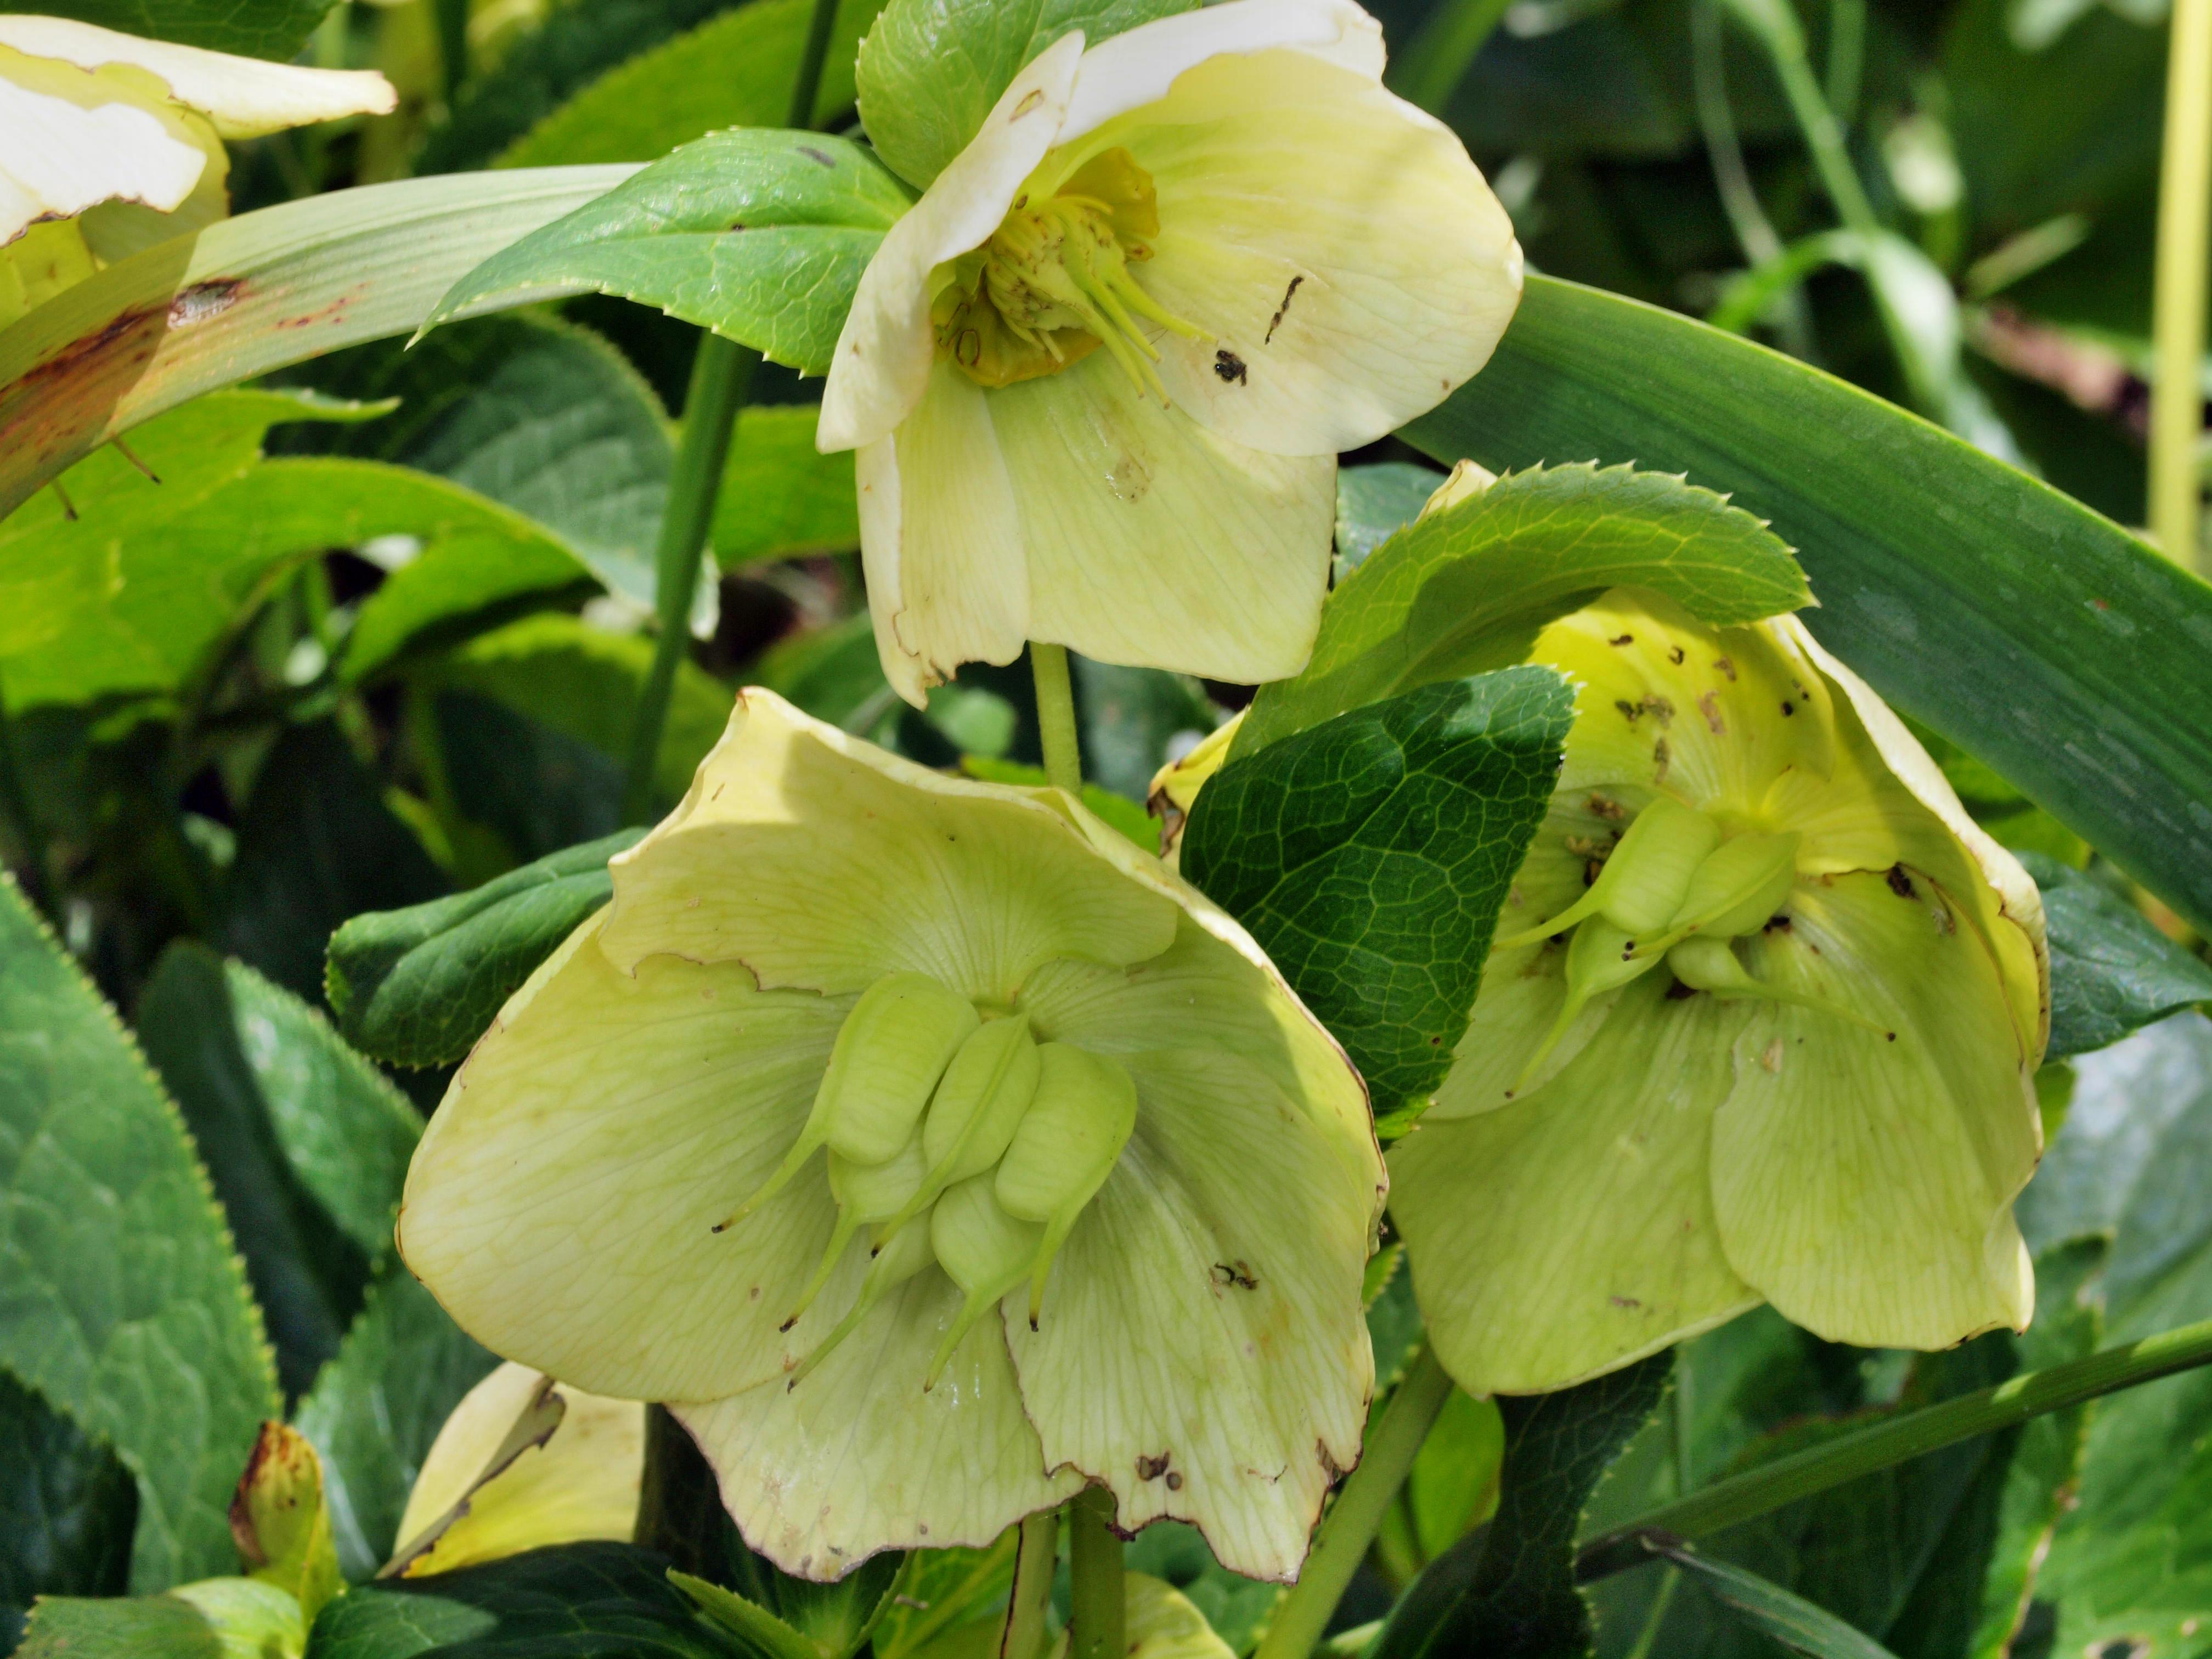 This should be Hellebore-1.jpeg.  Is it missing?